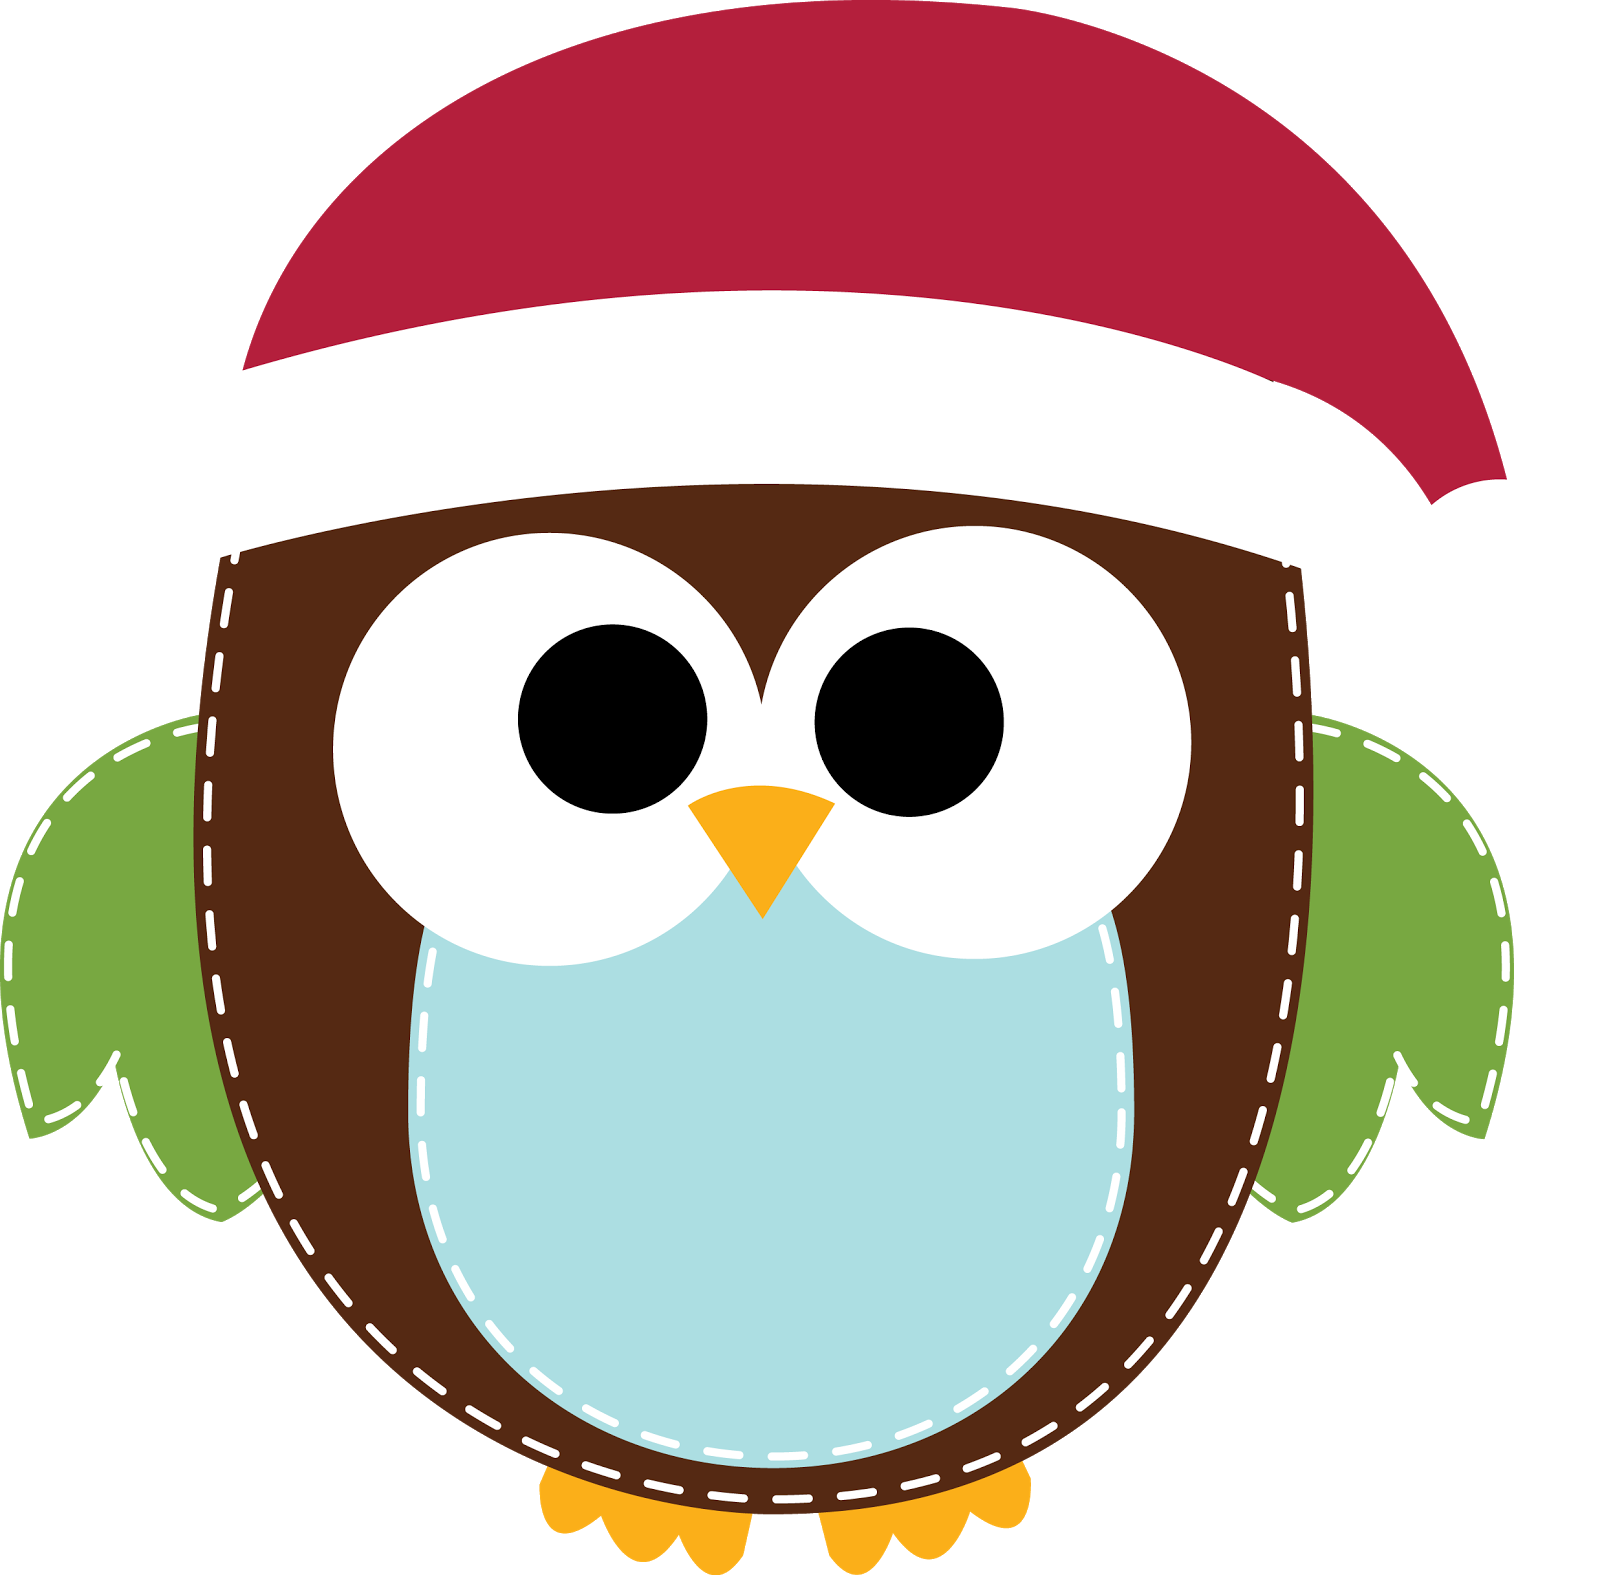 Free School Christmas Cliparts, Download Free Clip Art, Free.